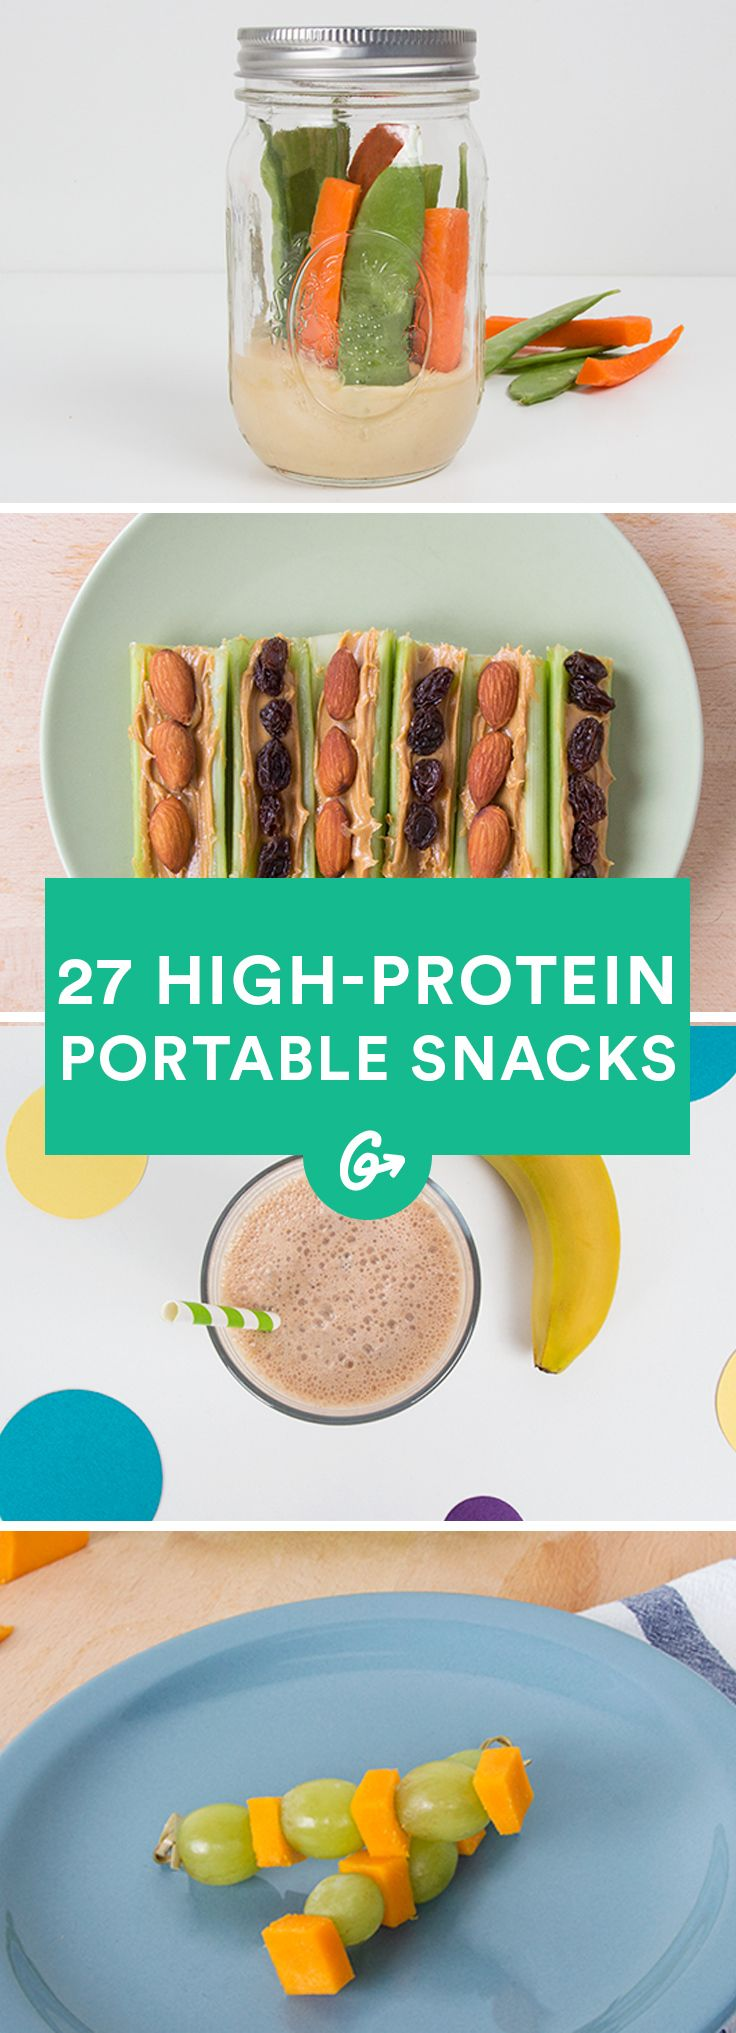 Whether you're fueling up before hitting the gym or taking a midday snack break to avoid the 3 p.m. lull, high-protein snacks are the tastiest way to keep on going. #highprotein #snacks http://greatist.com/health/high-protein-snacks-portable